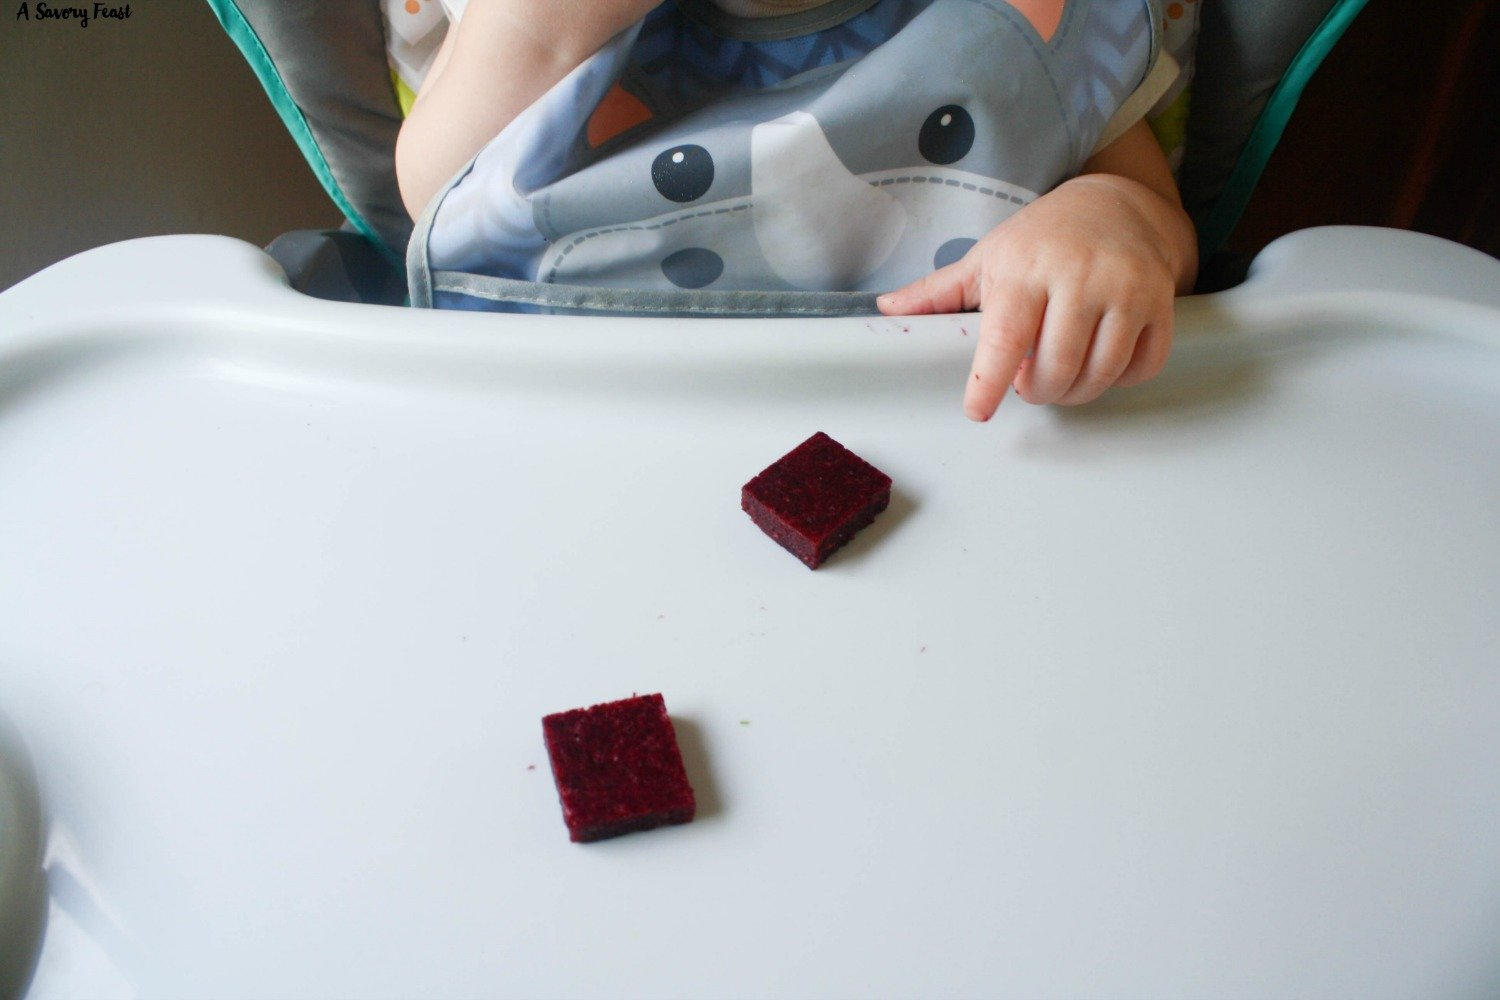 Fruit Gummies are a great homemade snack idea for toddlers.